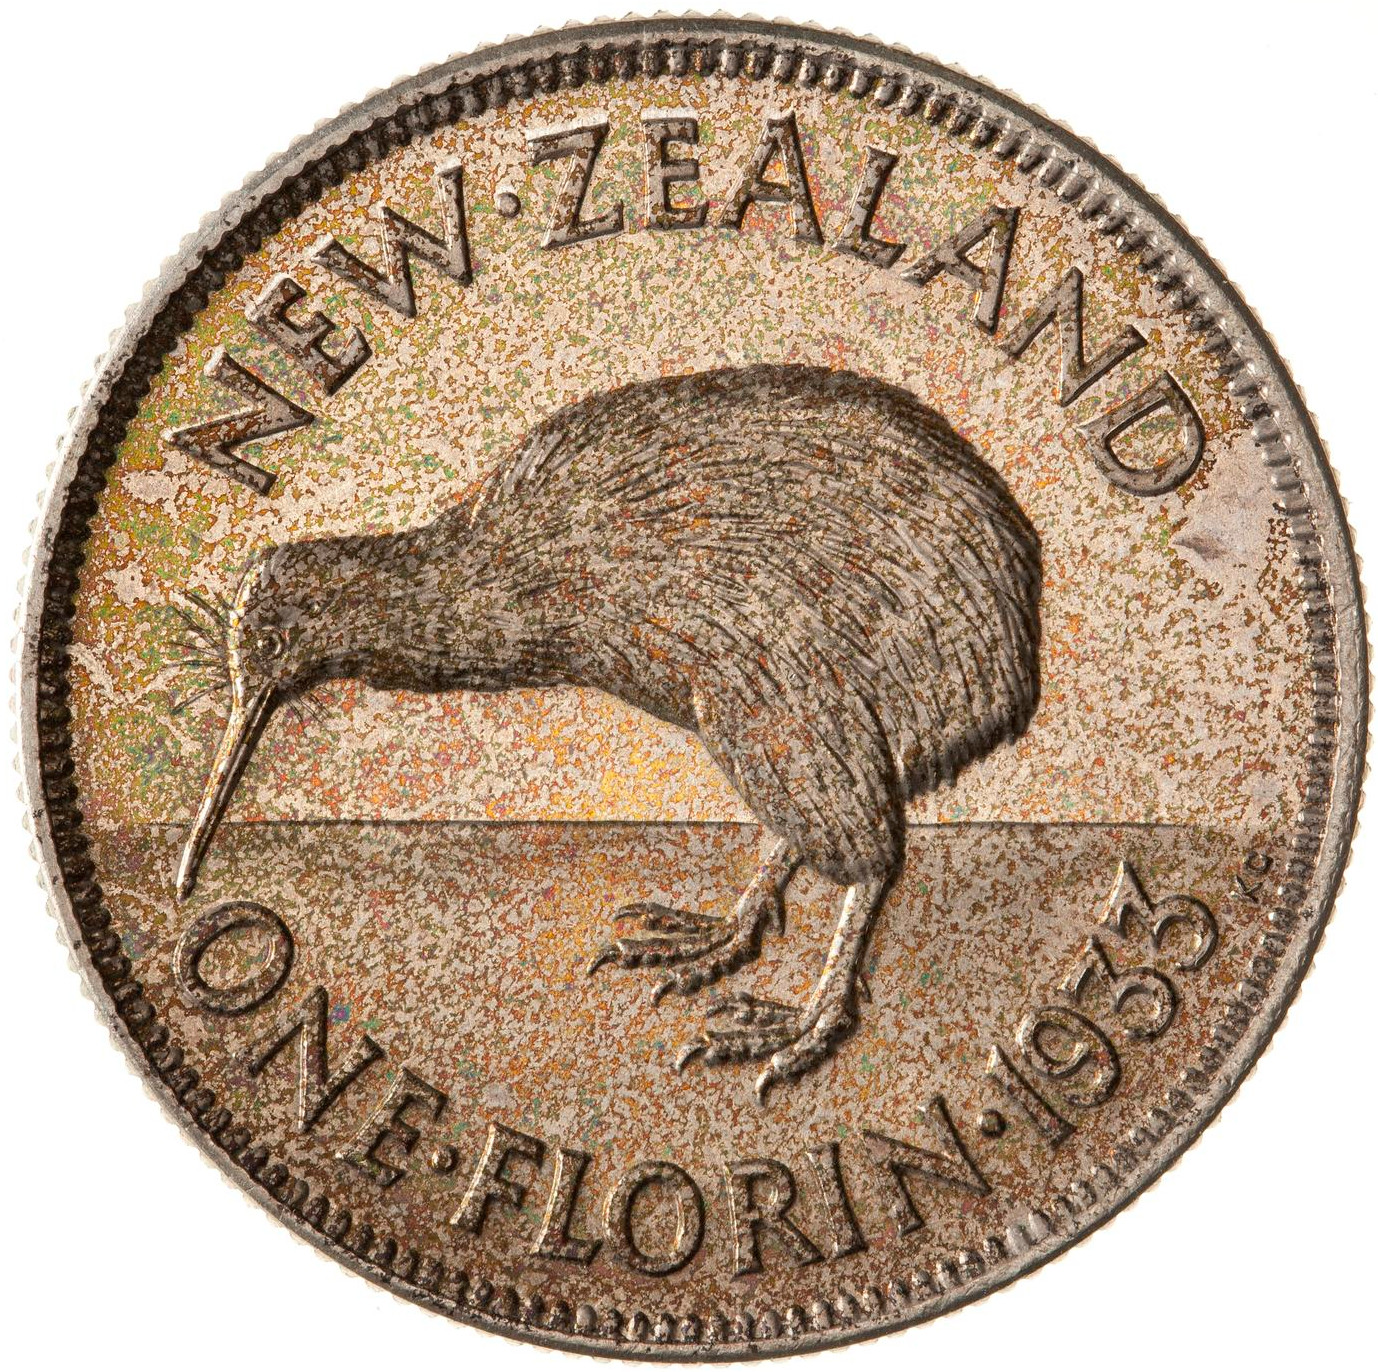 Florin 1933: Photo Proof Coin - Florin (2 Shillings), New Zealand, 1933